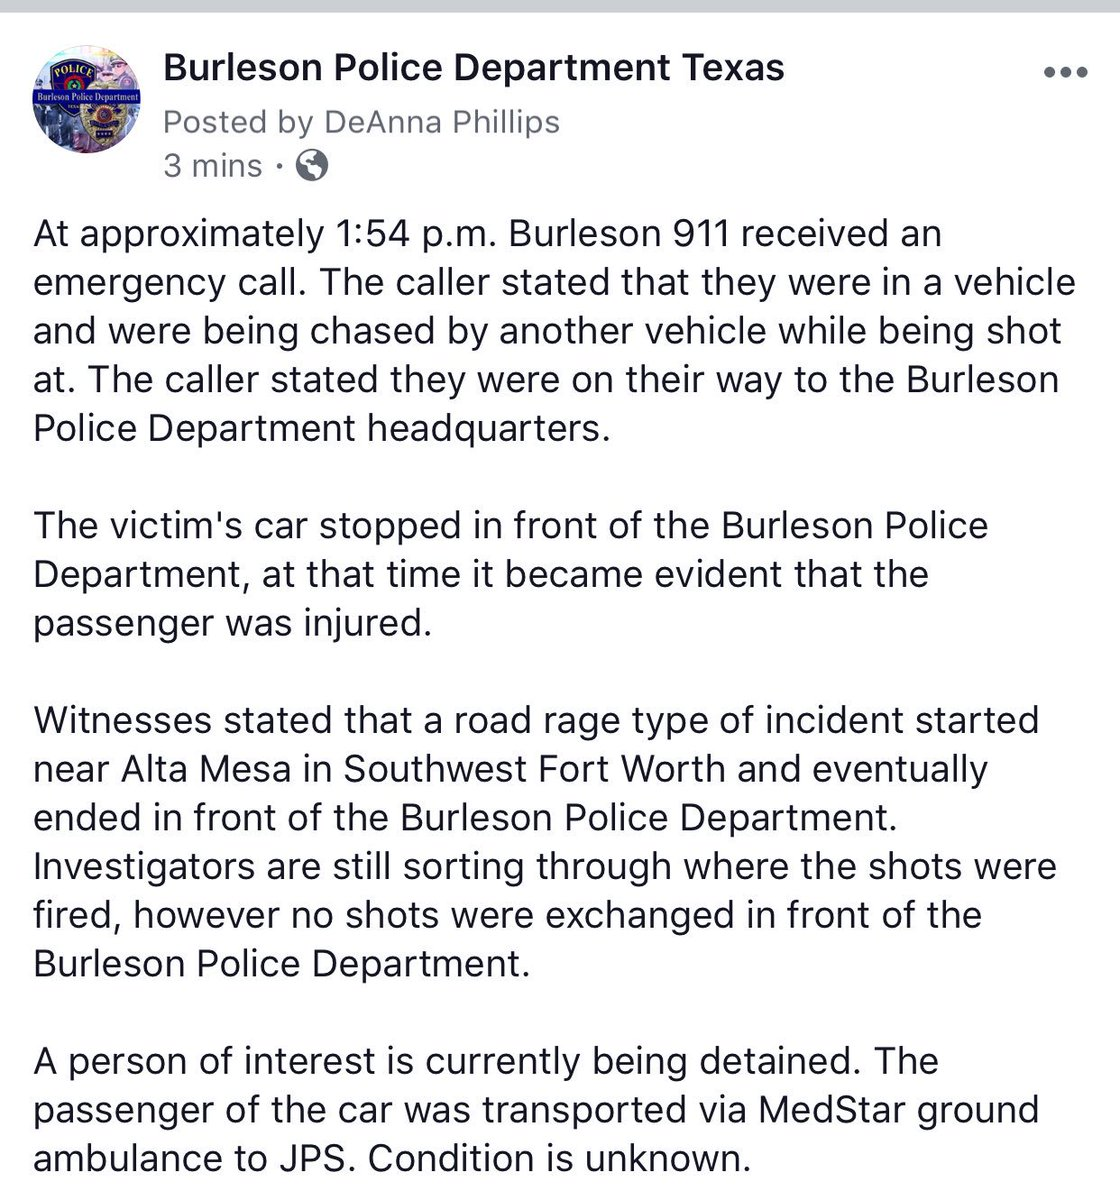 BurlesonPolice photo